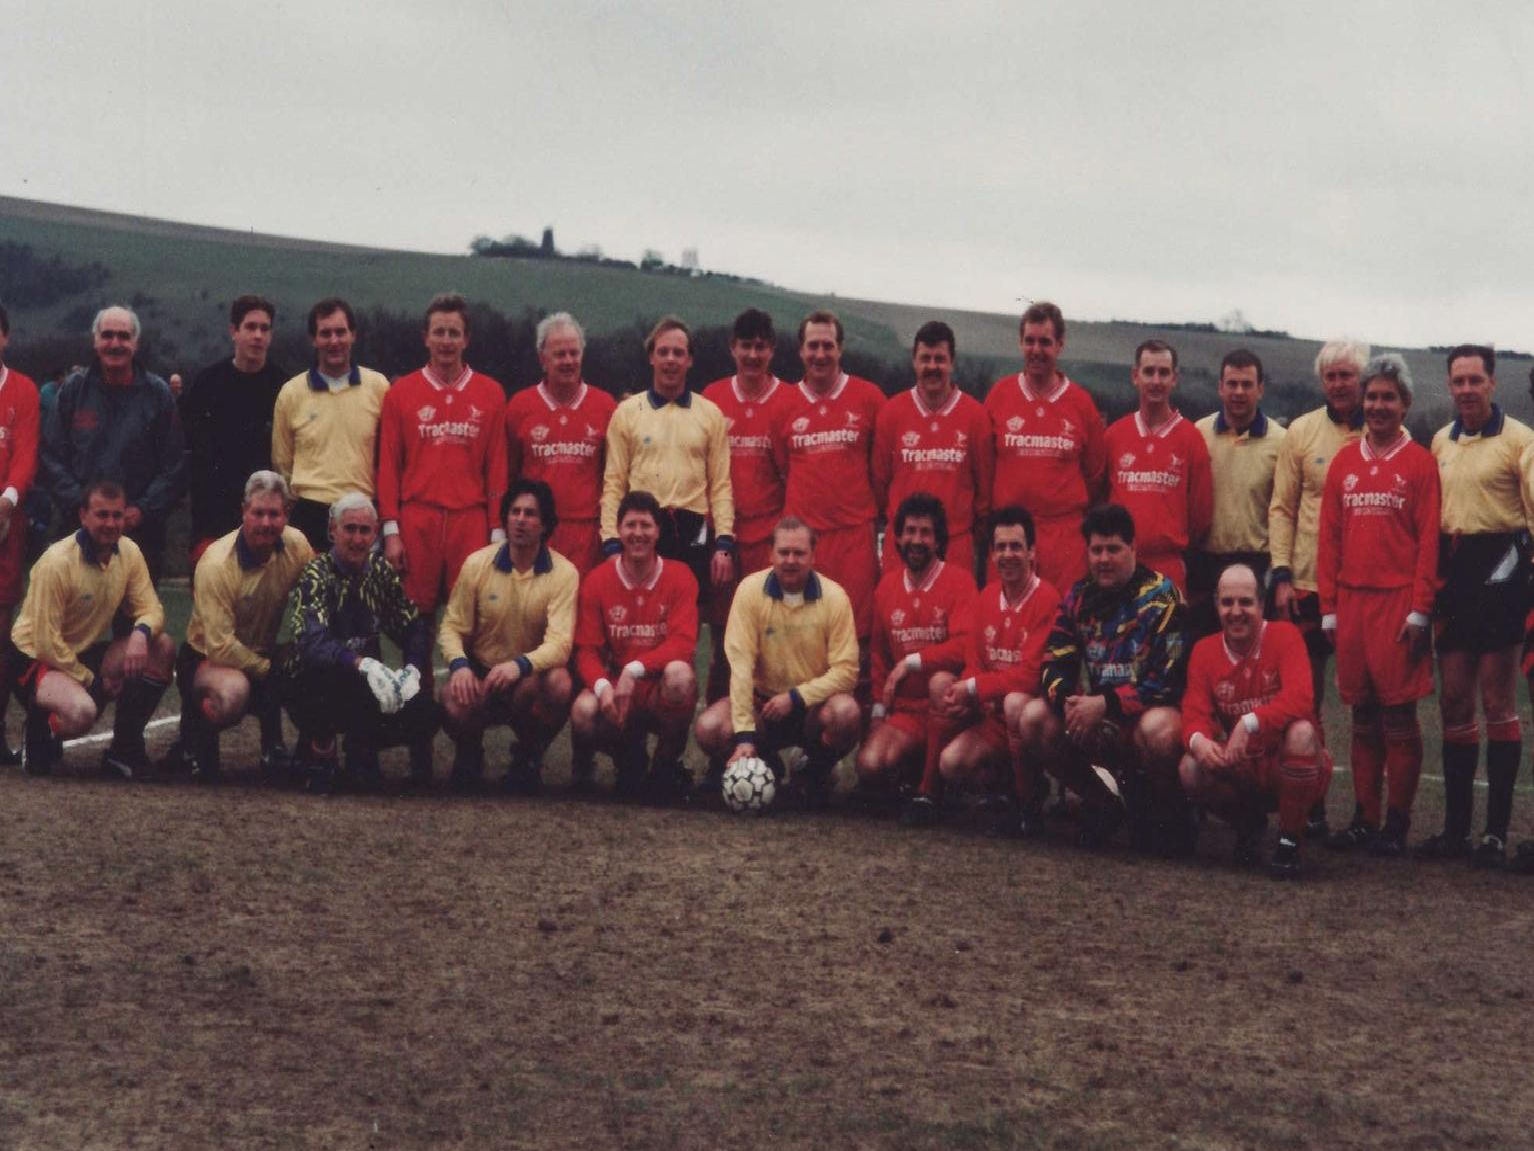 Hassocks and Chelsea teams line-up for a team picture before the Matthew Harding Memorial game in March on 1997. Do you recognise anyone?